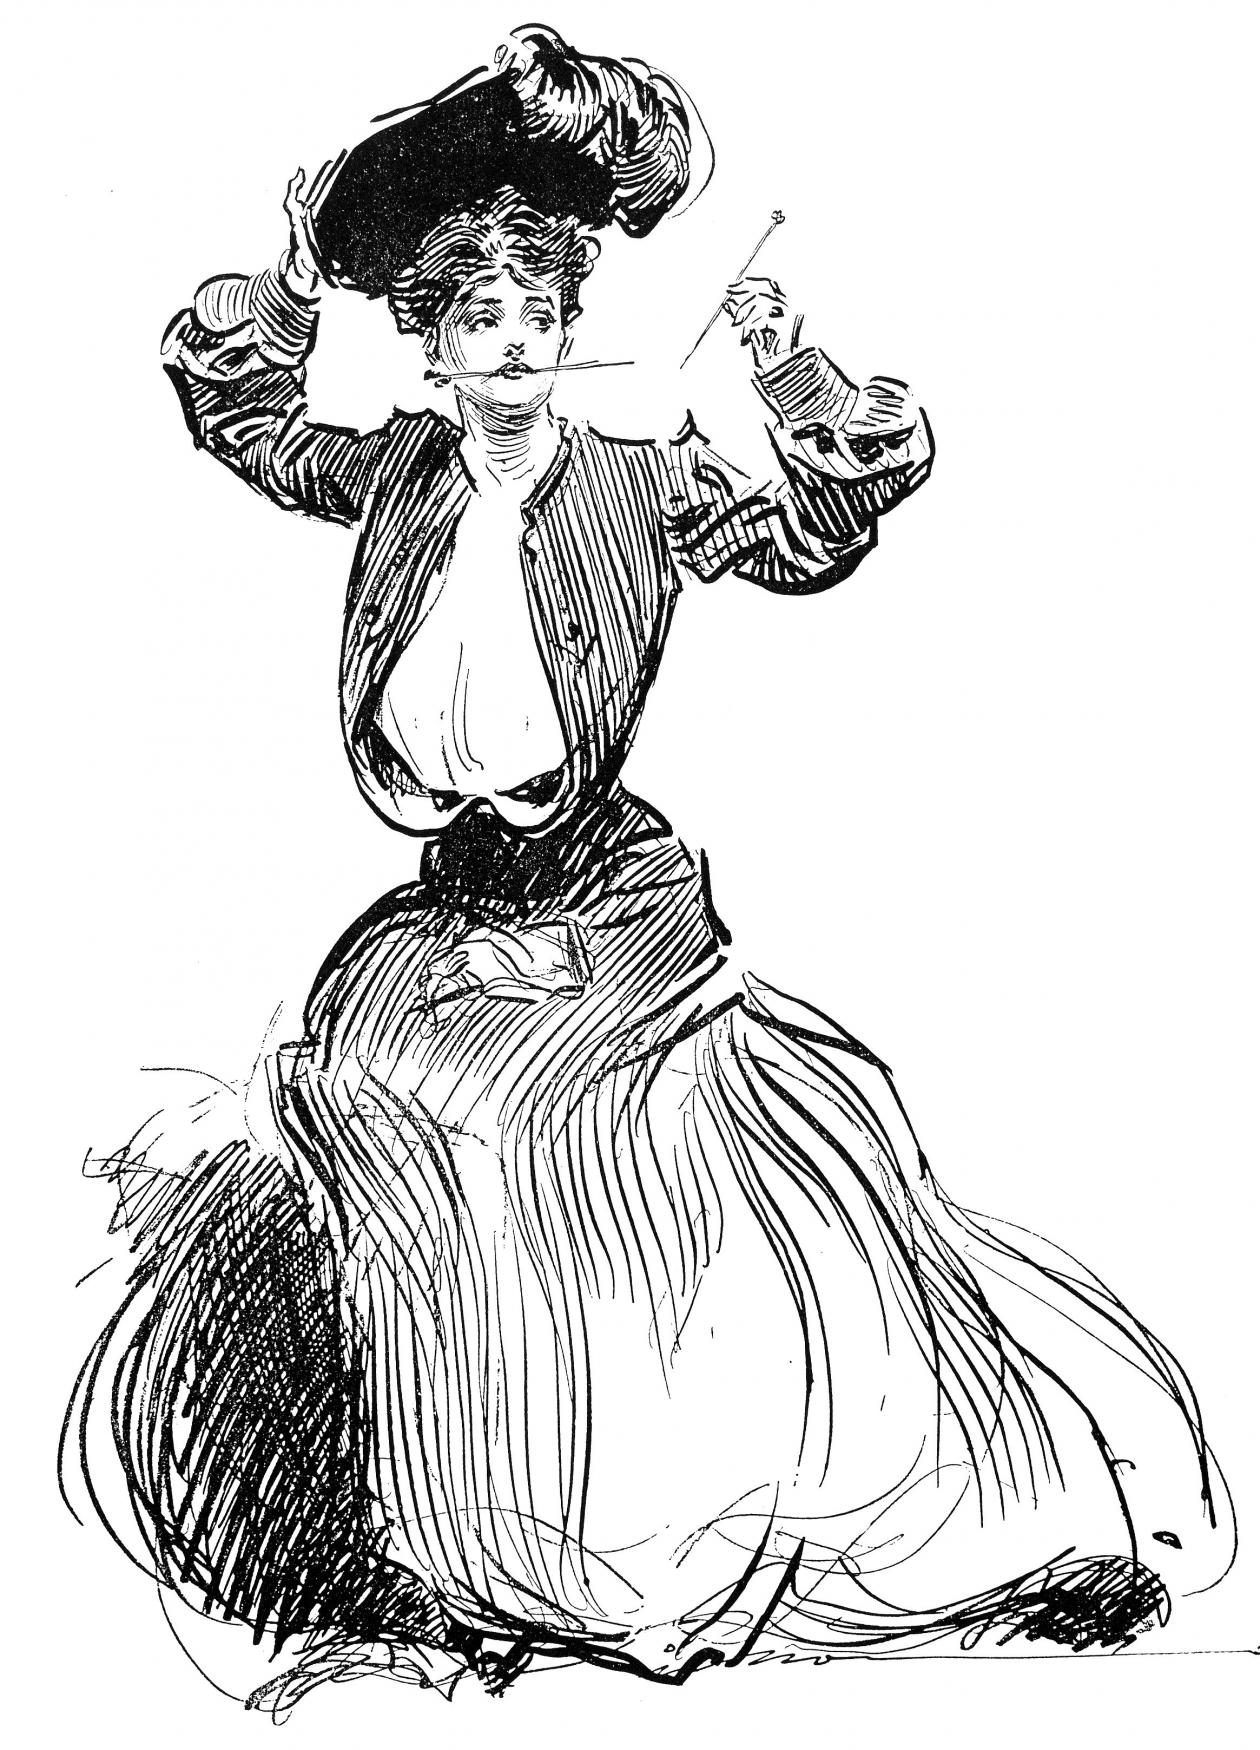 black and white drawing of a woman adjusting her hat